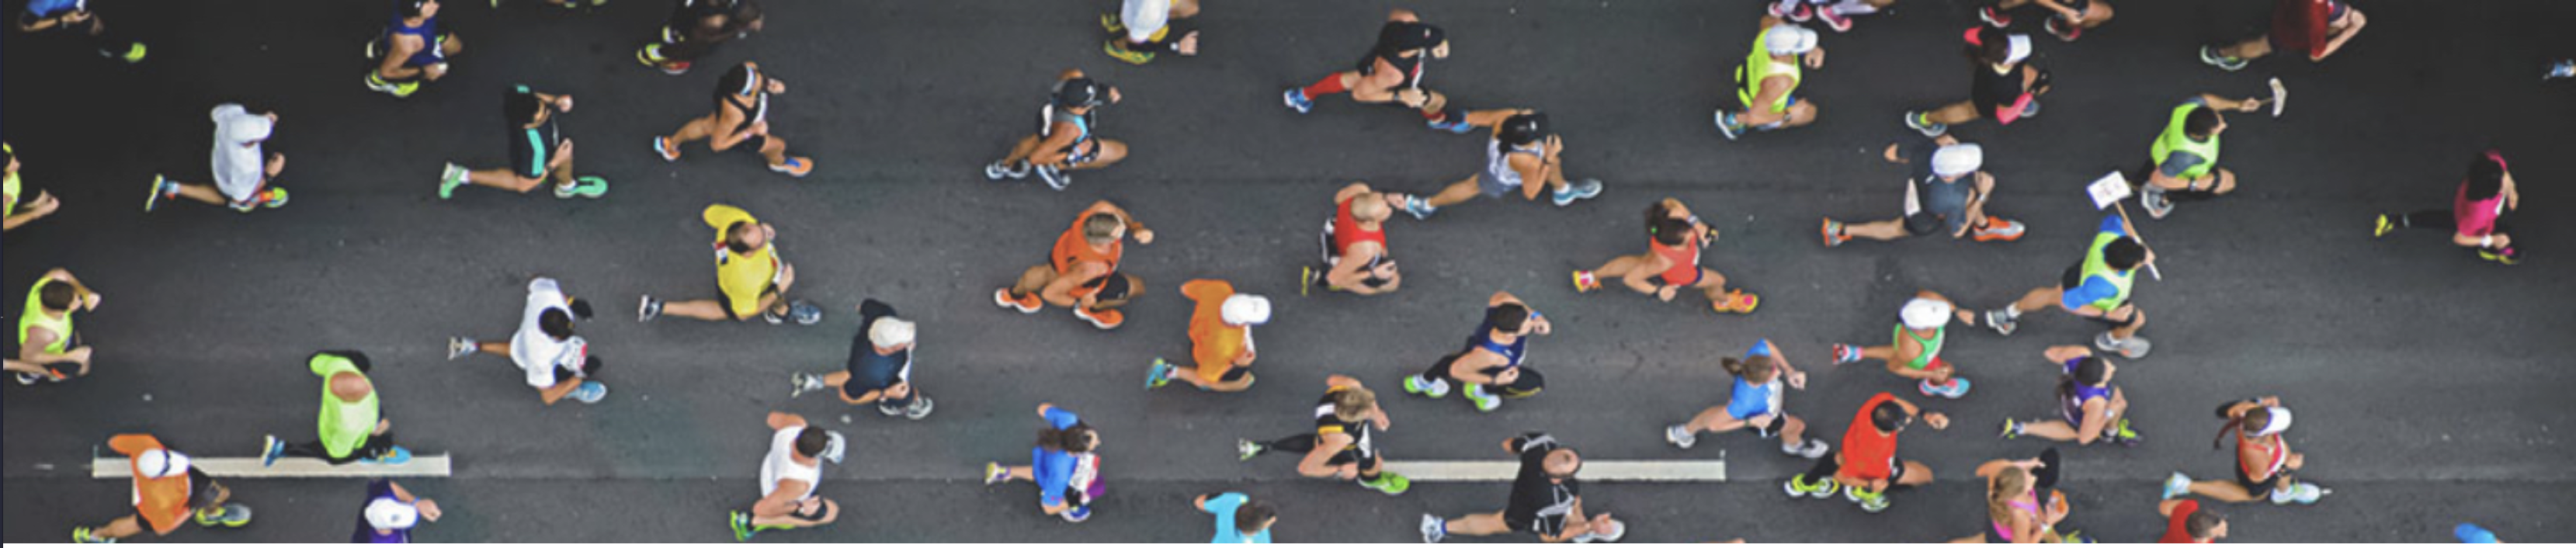 Looking down at runners on a street for a Determination marathon event